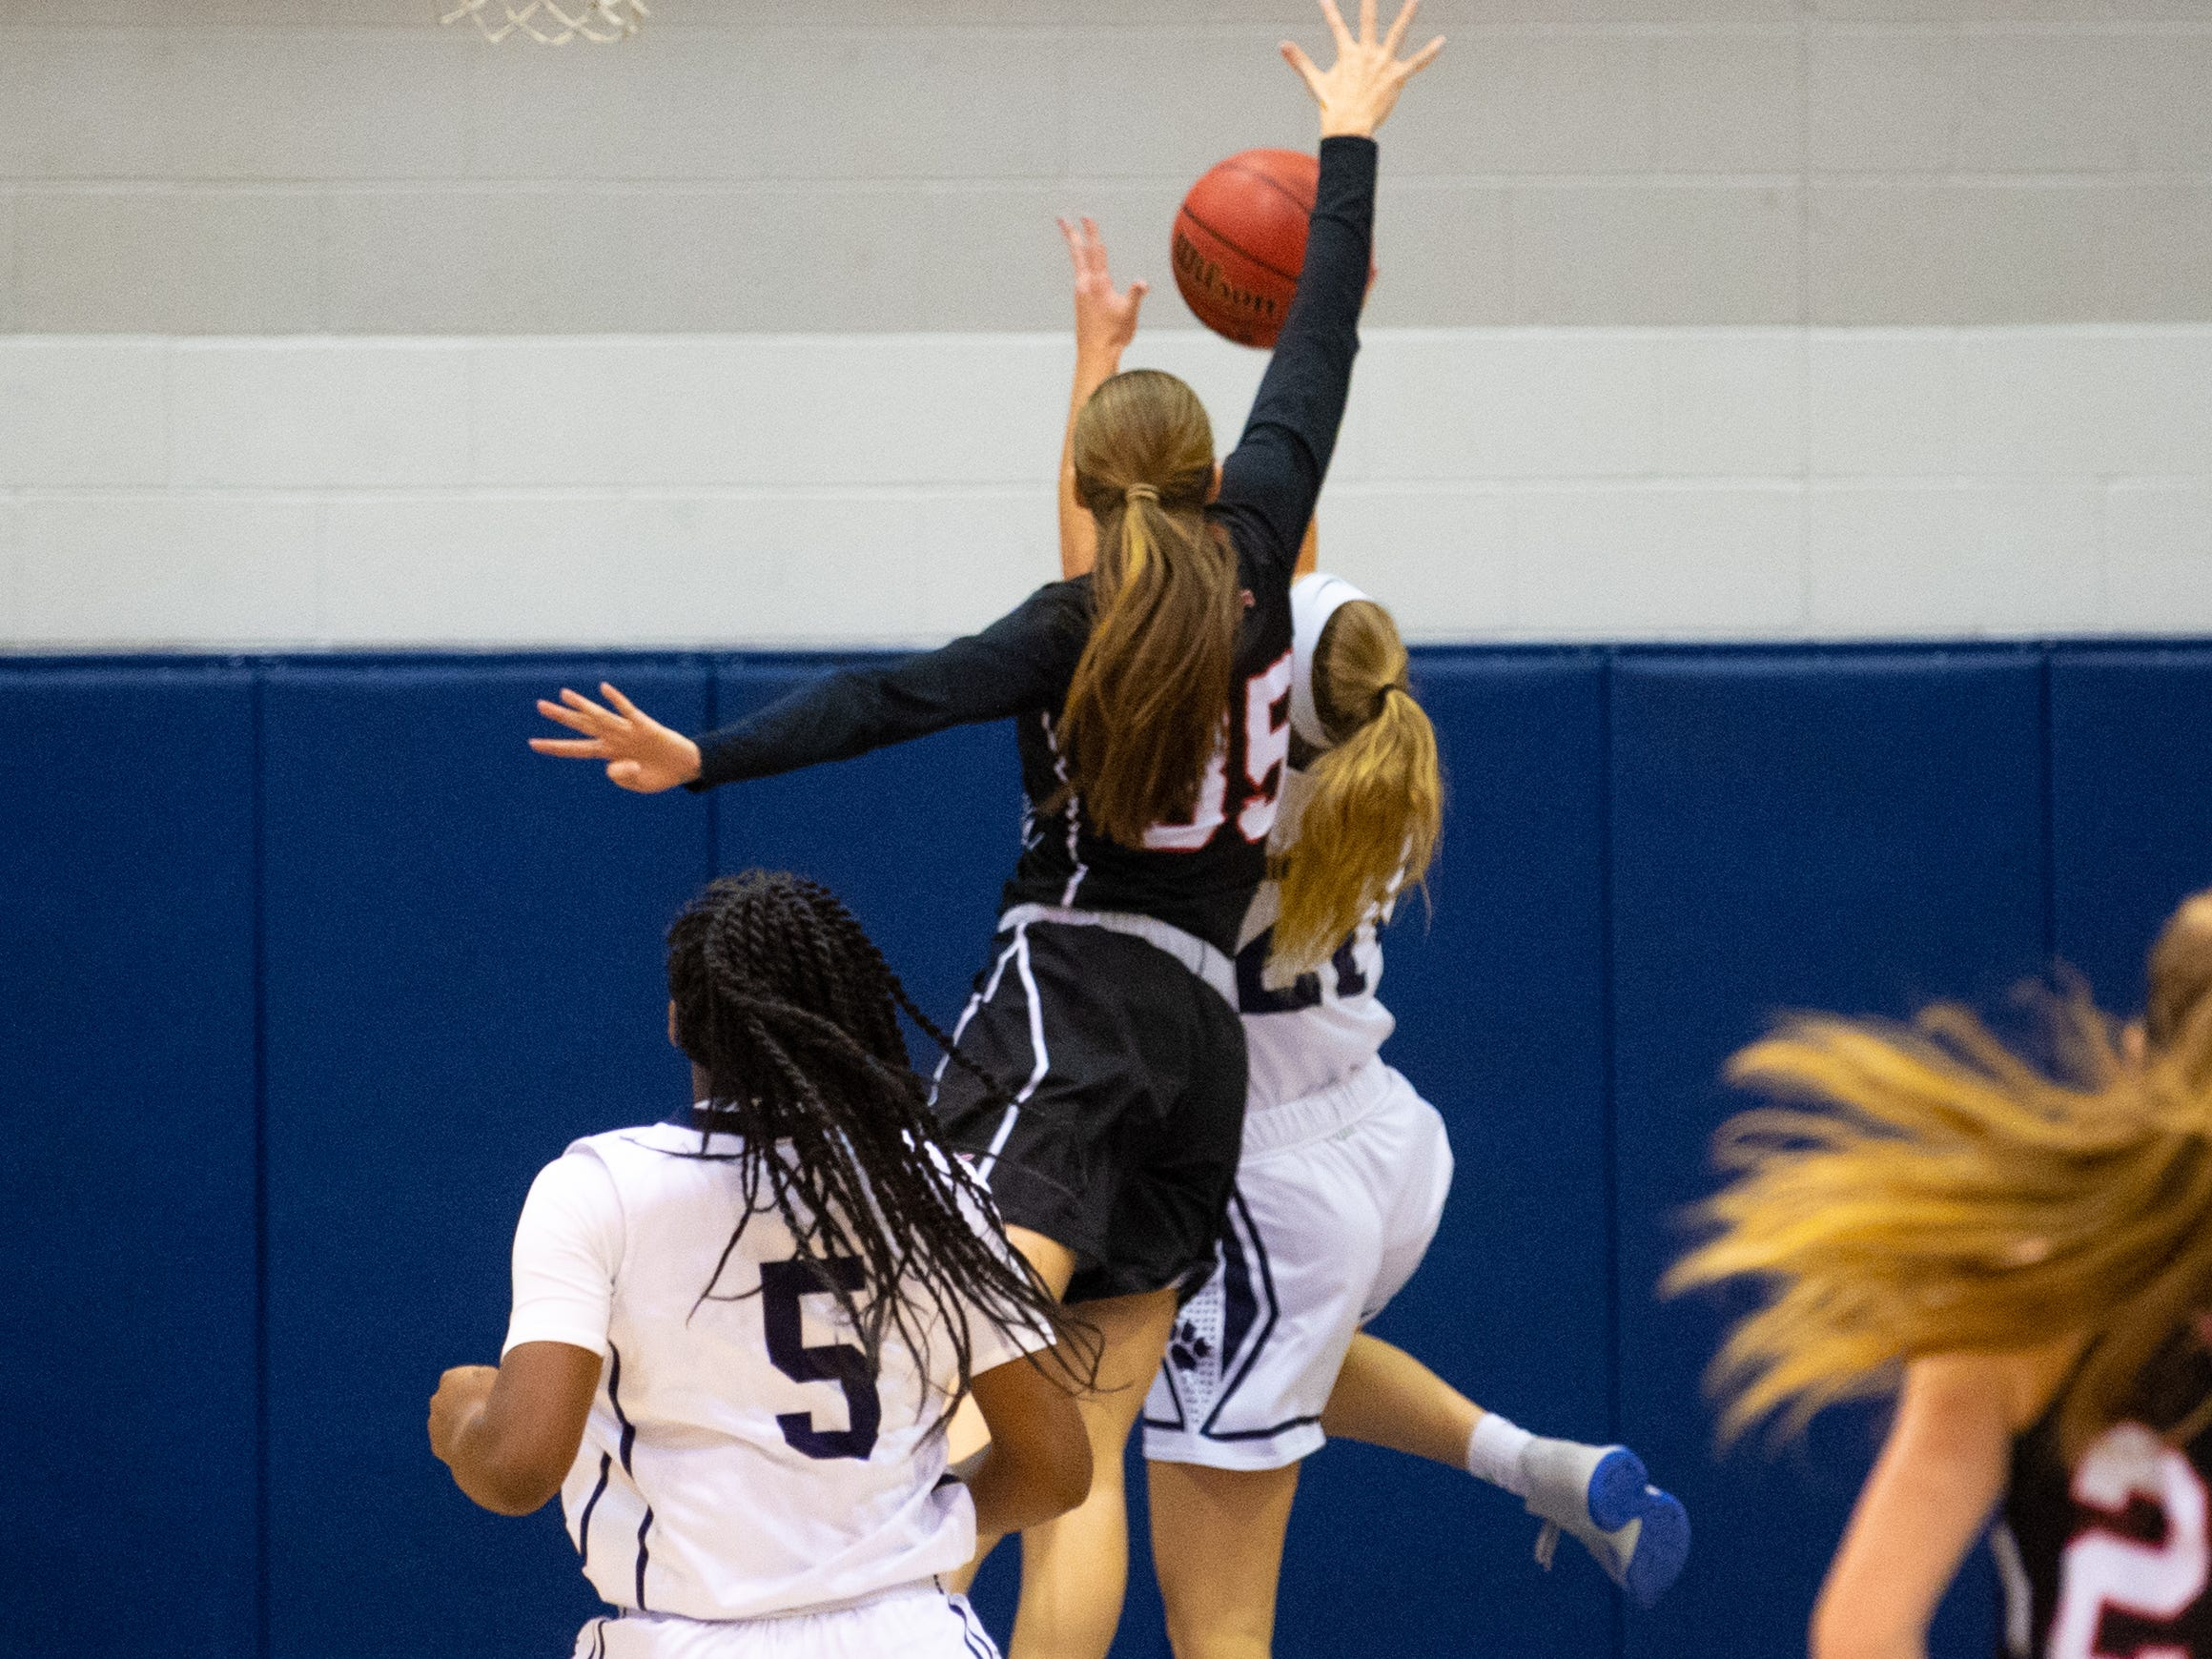 Taylor Geiman (35) of South Western rejects a Dallastown layup during the YAIAA girls' basketball game, Tuesday, January 22, 2019. The Wildcats defeated the Mustangs 38-35.